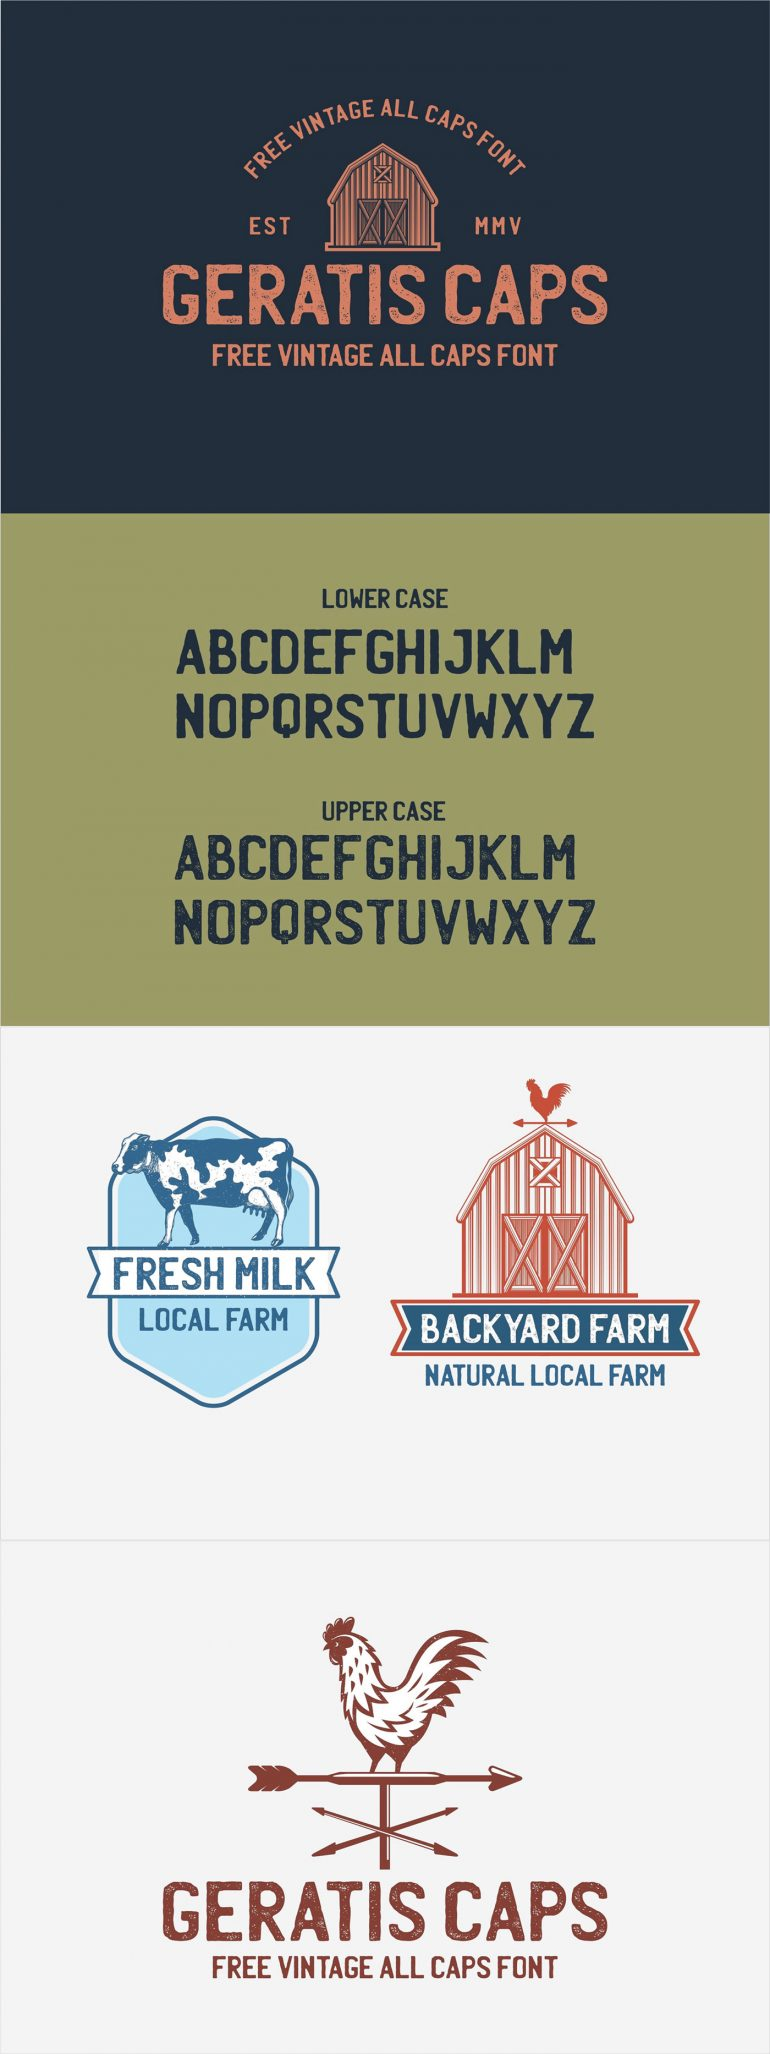 GERATIS – FREE VINTAGE ALL-CAPS FONT | 2 STYLES